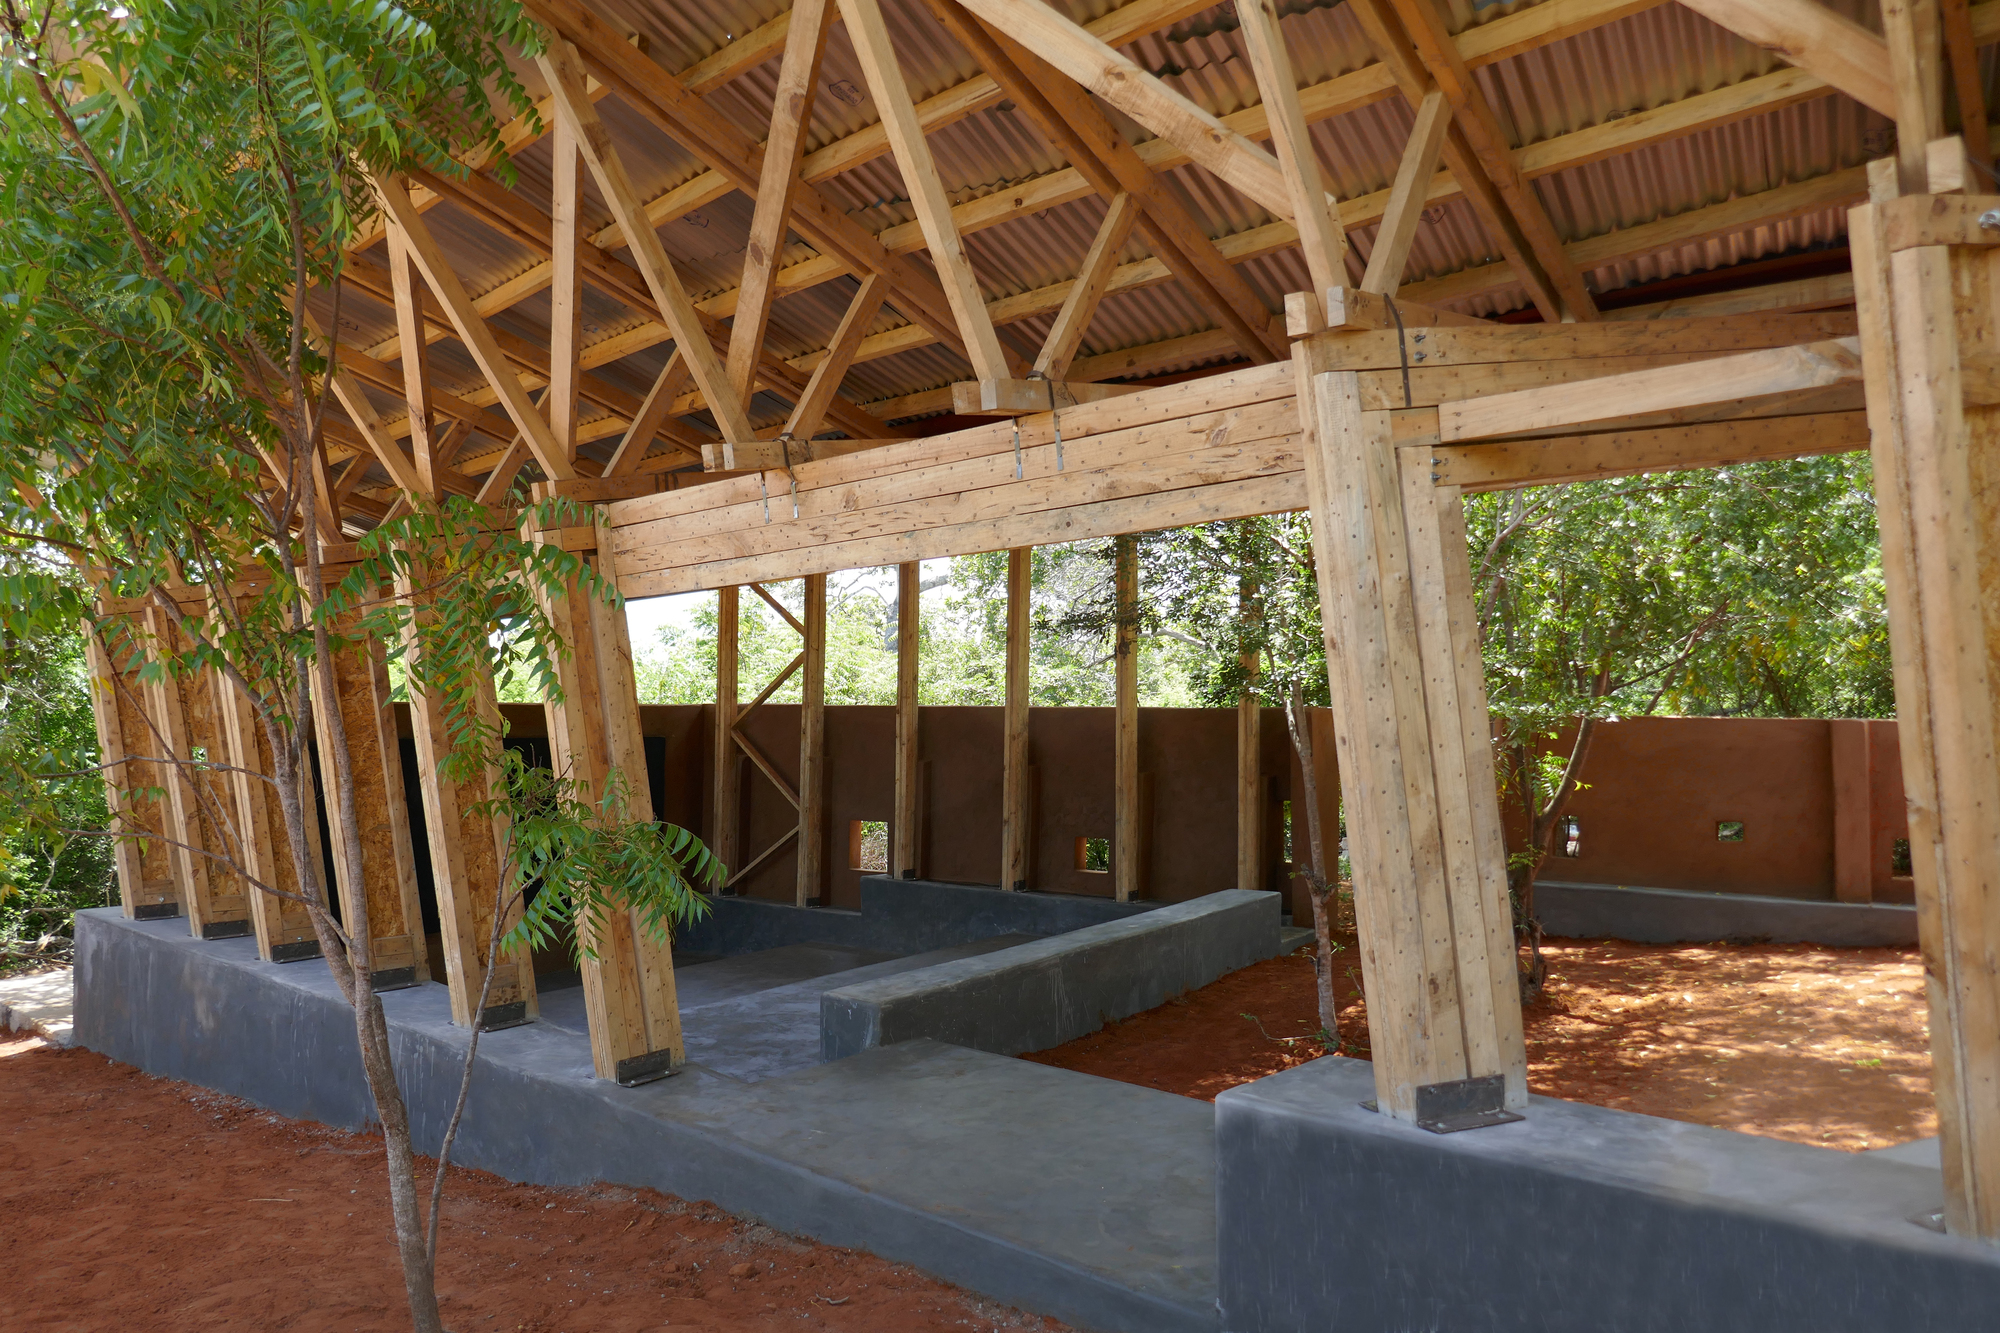 Architecture from Kenya | ArchDaily